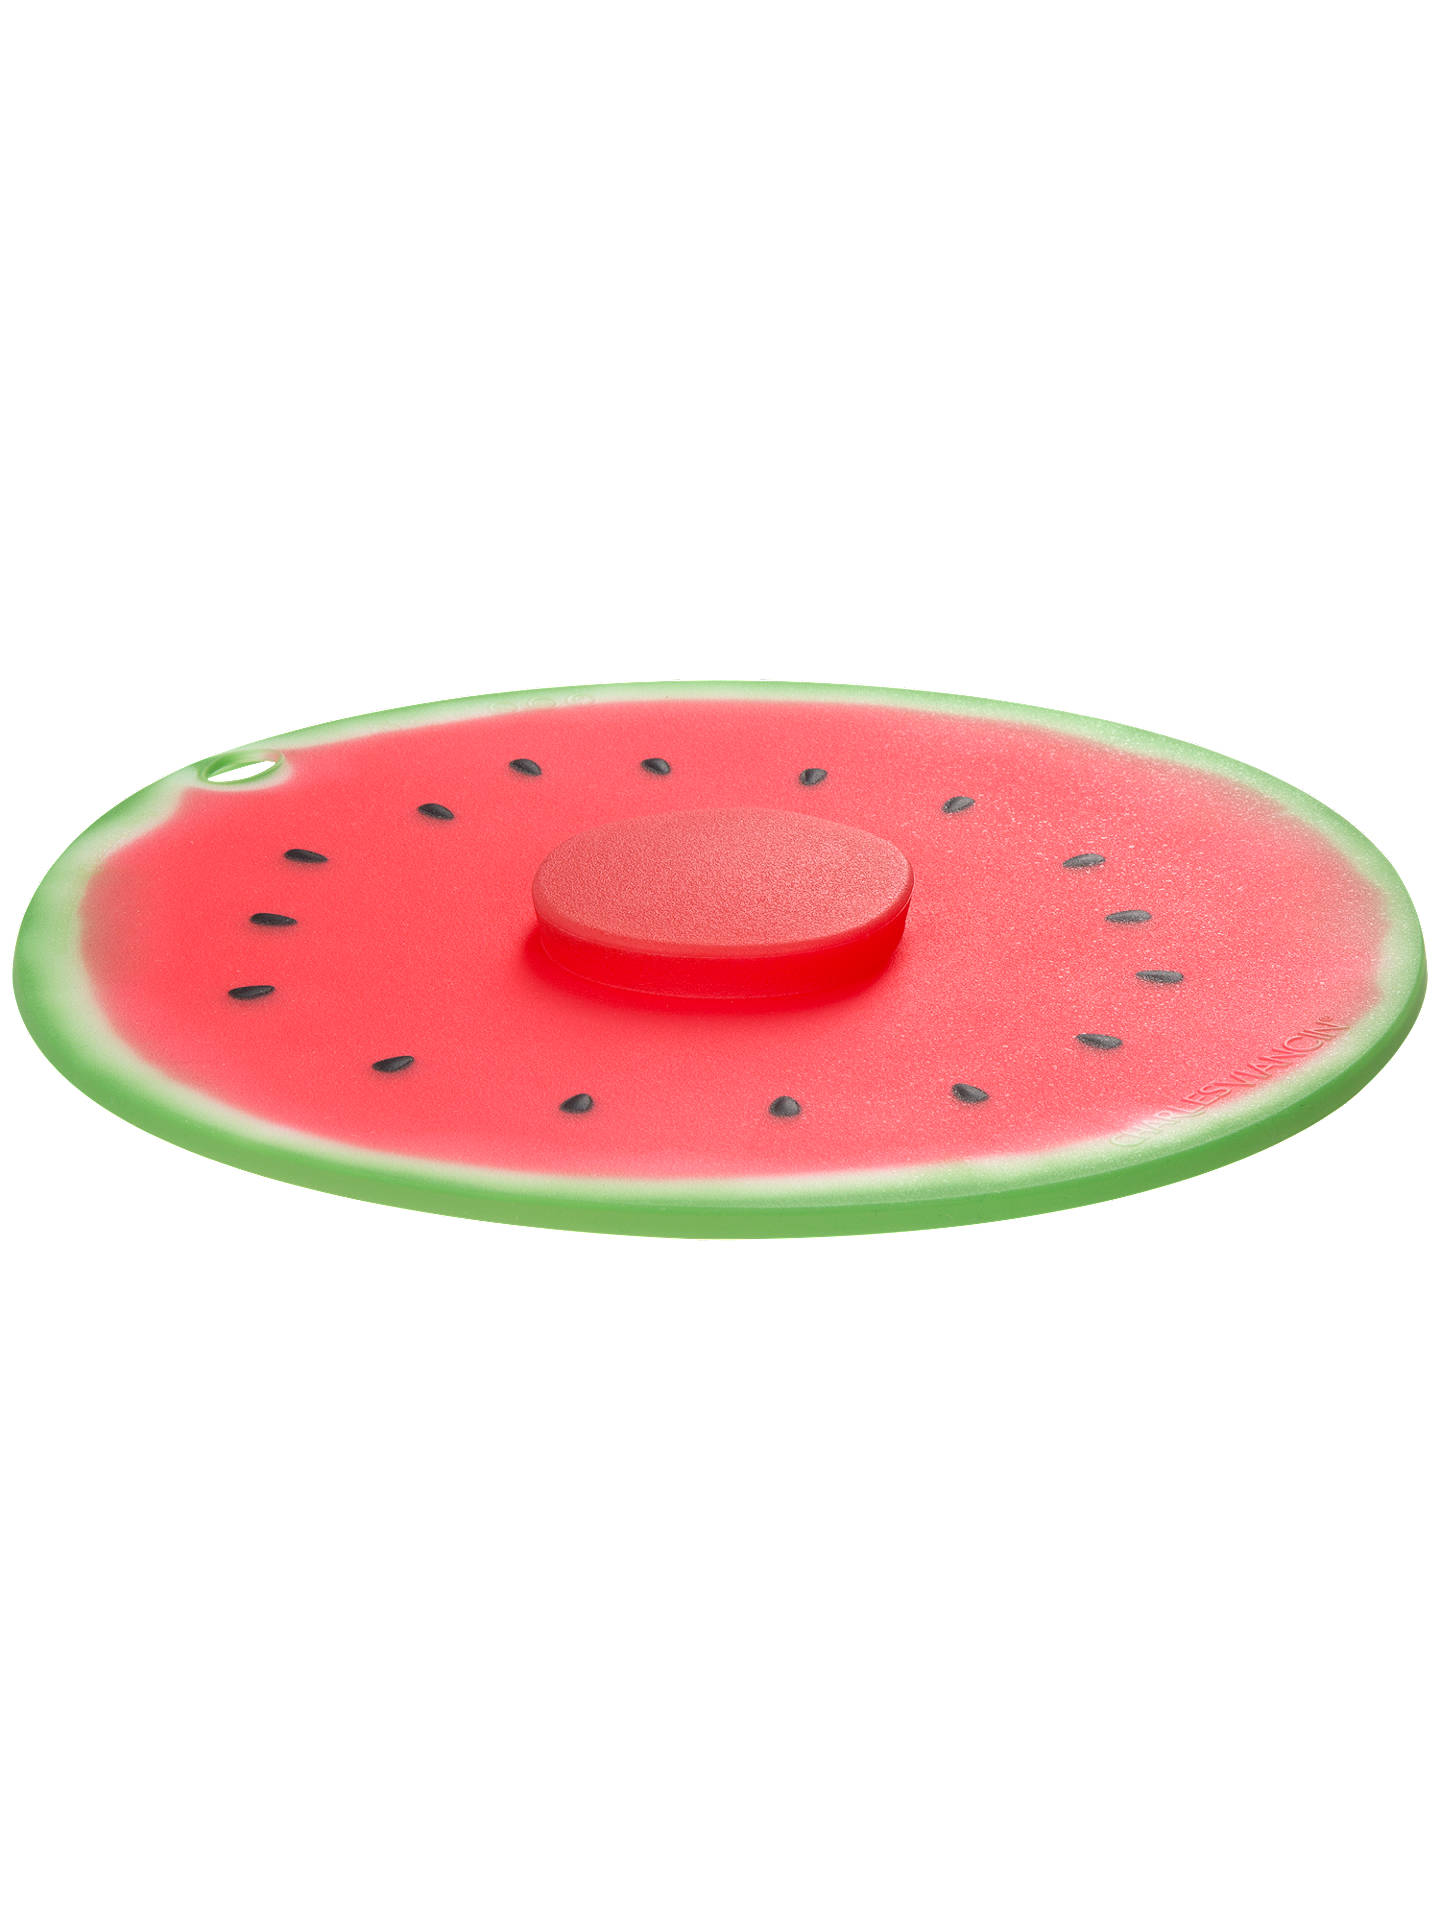 BuyCharles Viancin Watermelon Shaped Saucepan and Food Storage Lid, Red, Medium Online at johnlewis.com